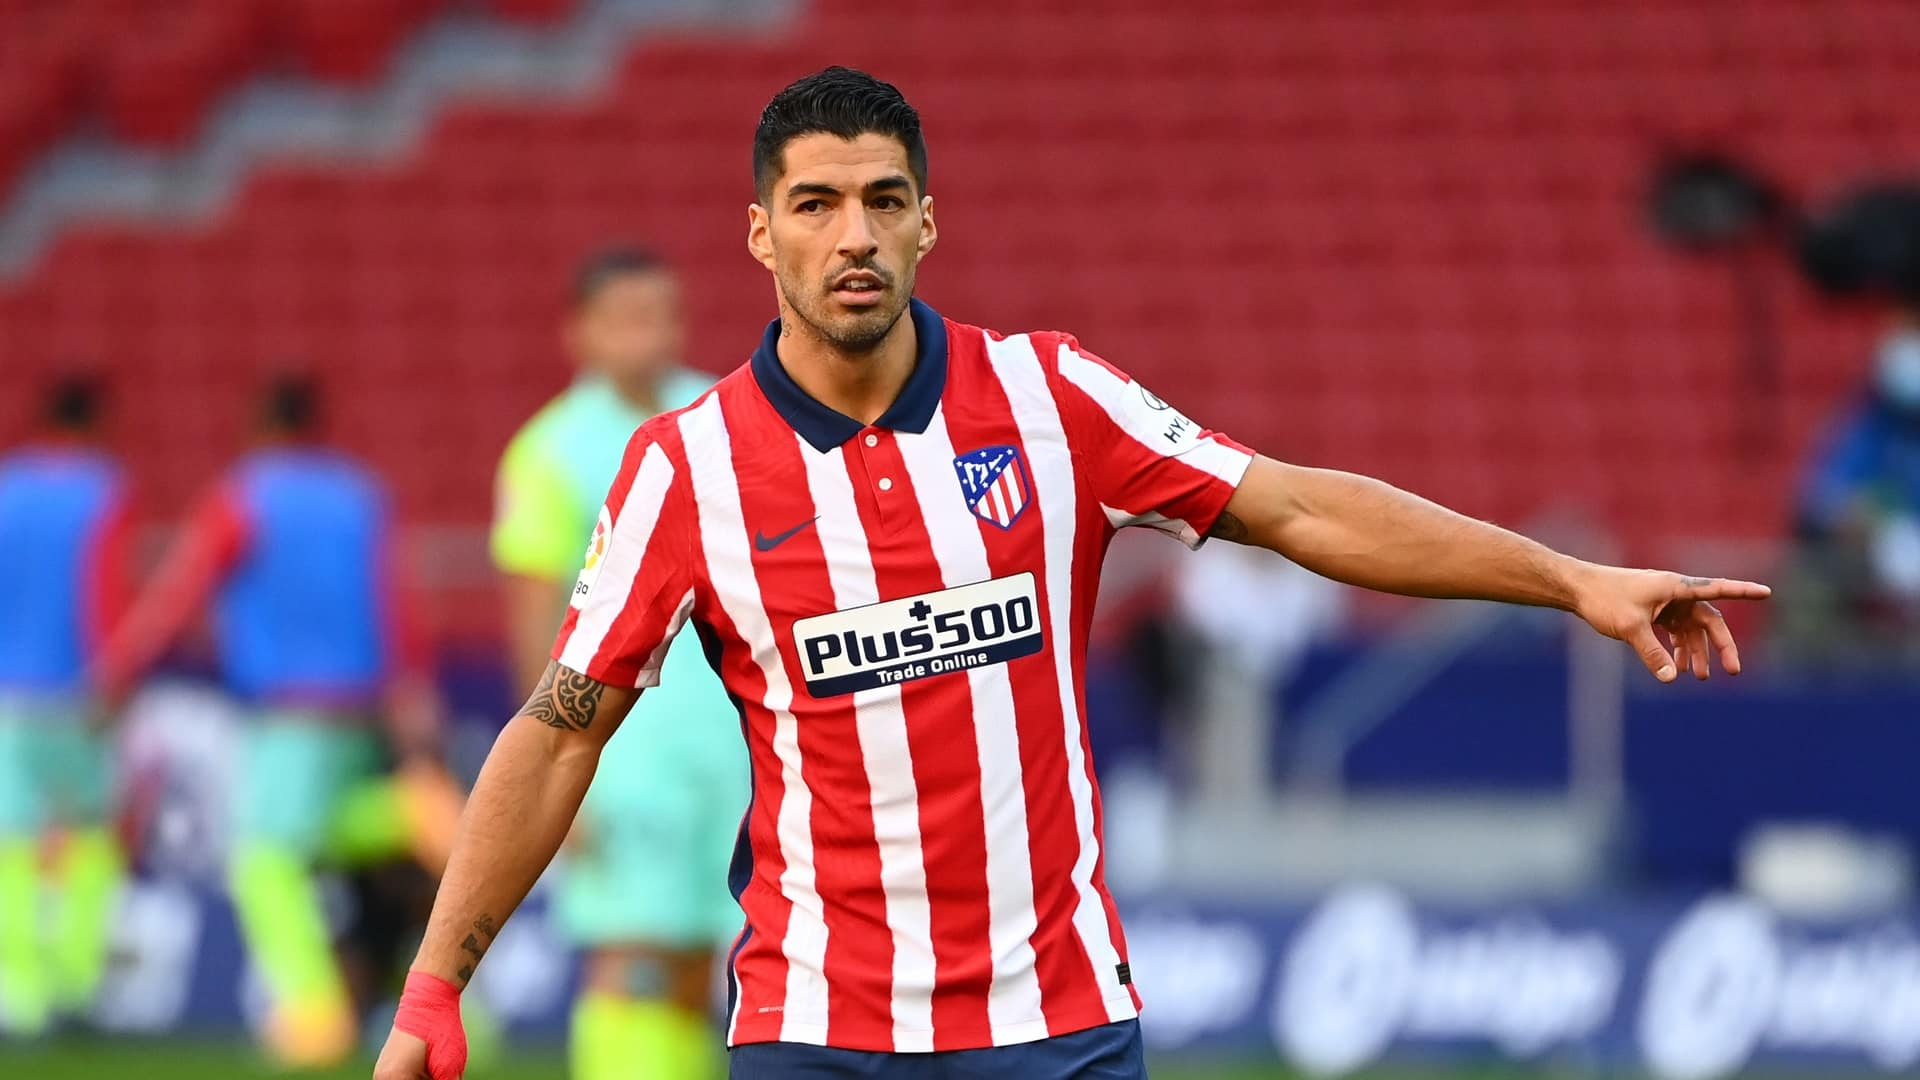 Luis Suarez attaccante dell'Atletico Madrid